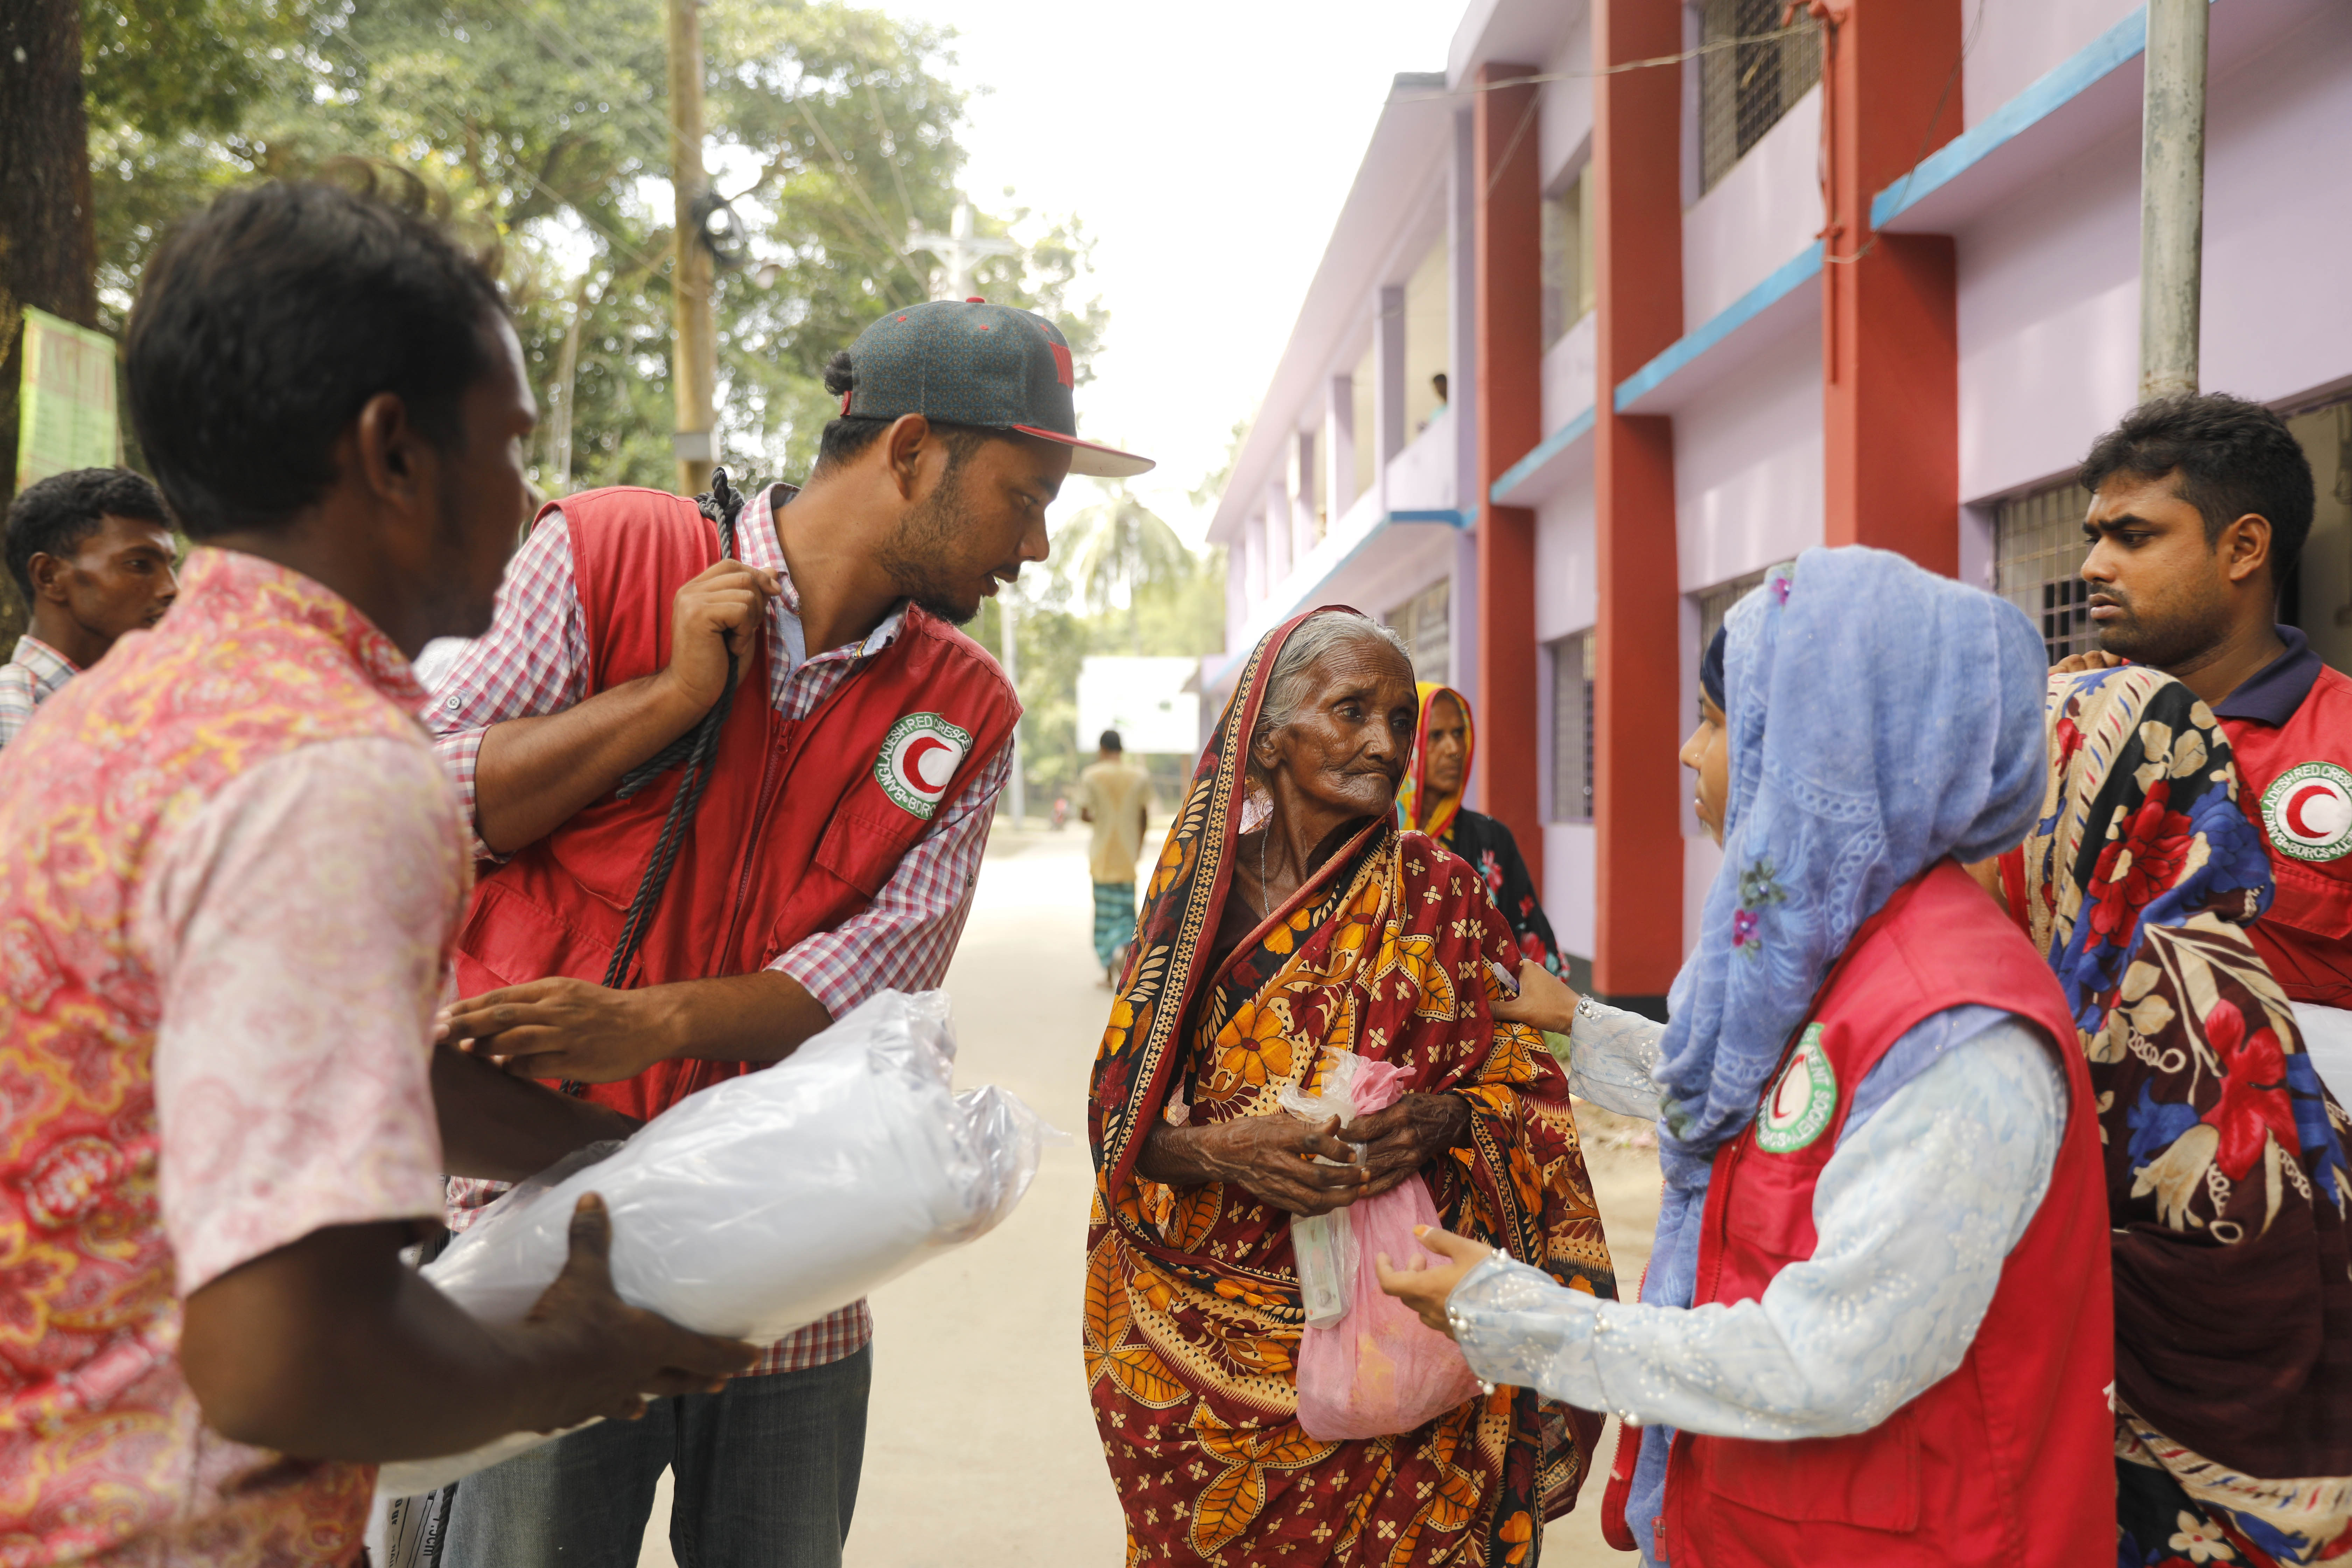 Members of the Bangladesh Red Crescent society help an elderly woman